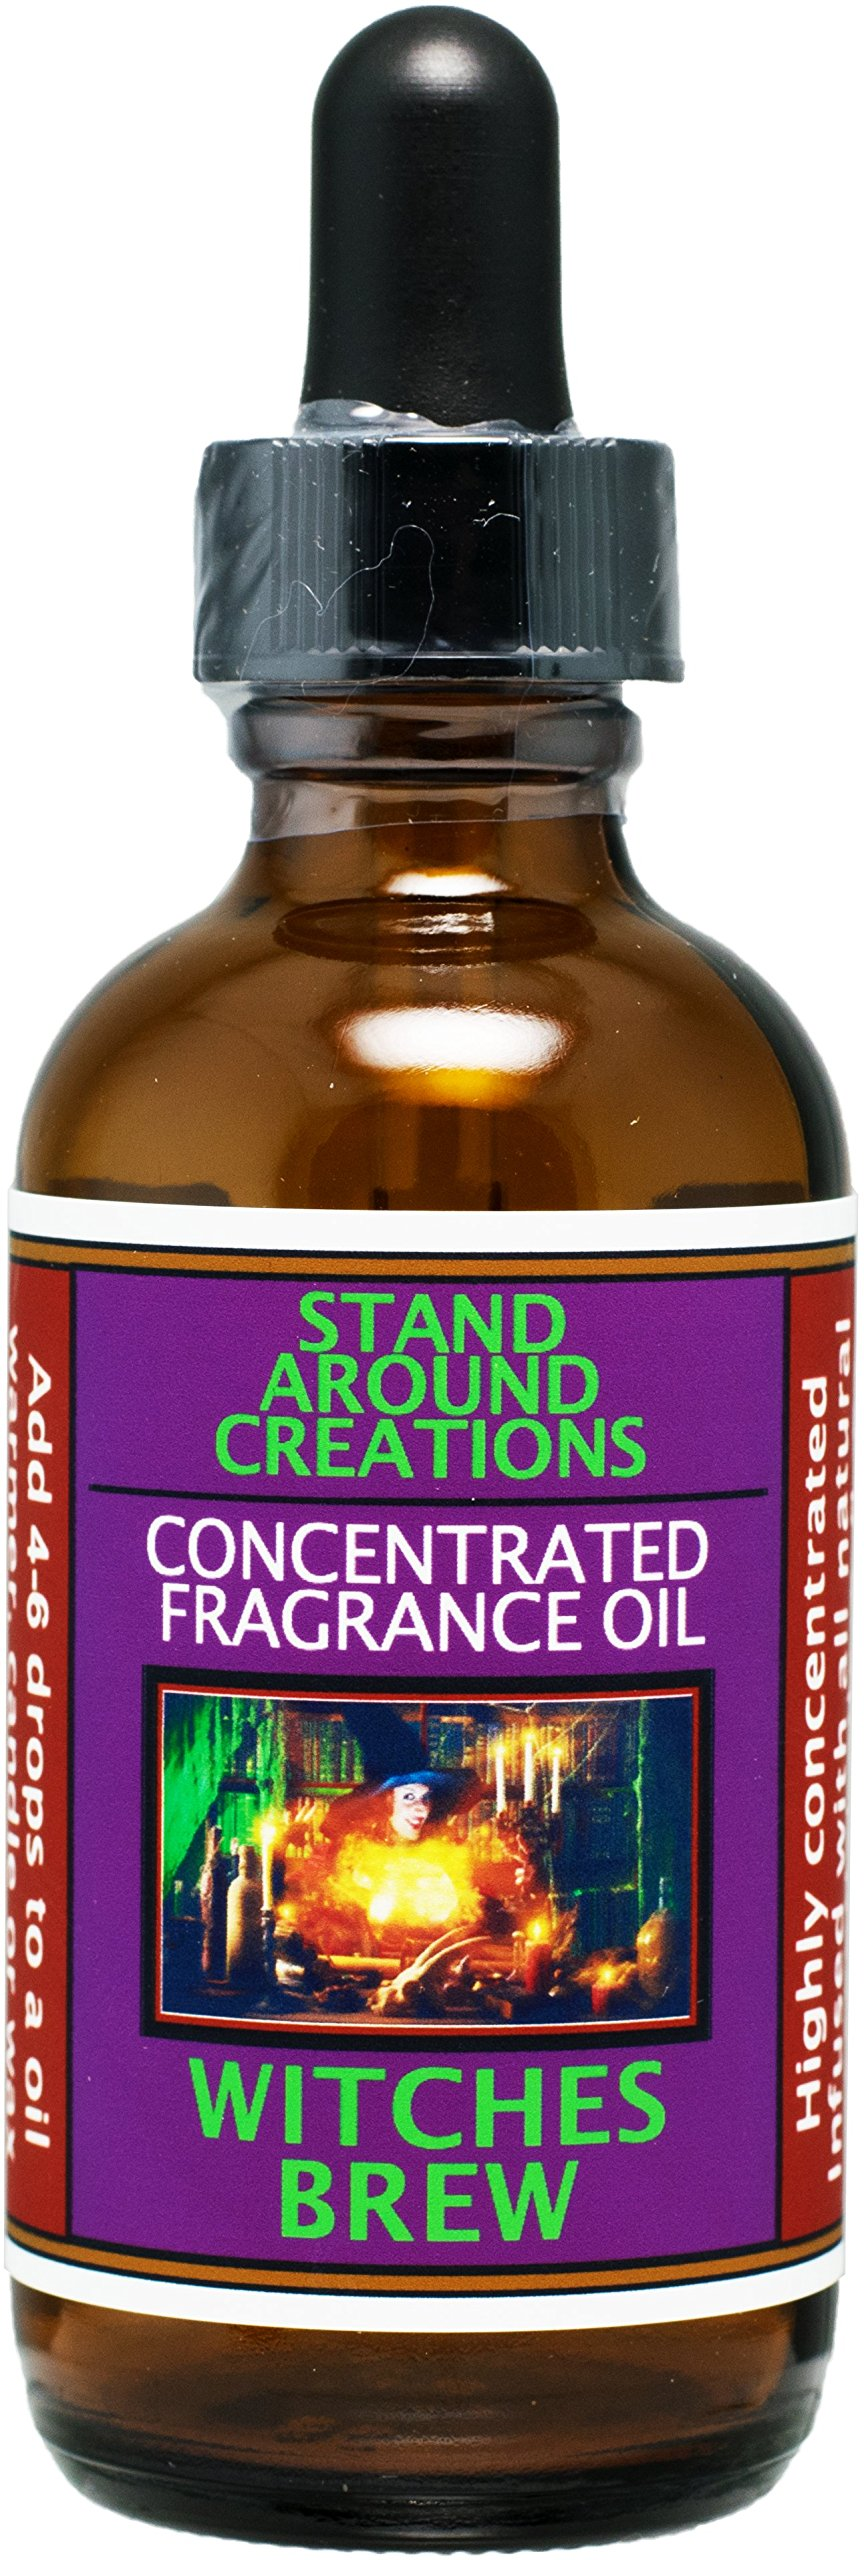 Concentrated Fragrance Oil - Witches Brew - A celebration of patchouli, cinnamon and cedarwood. Infused w/essential oils. (2 fl.oz.)